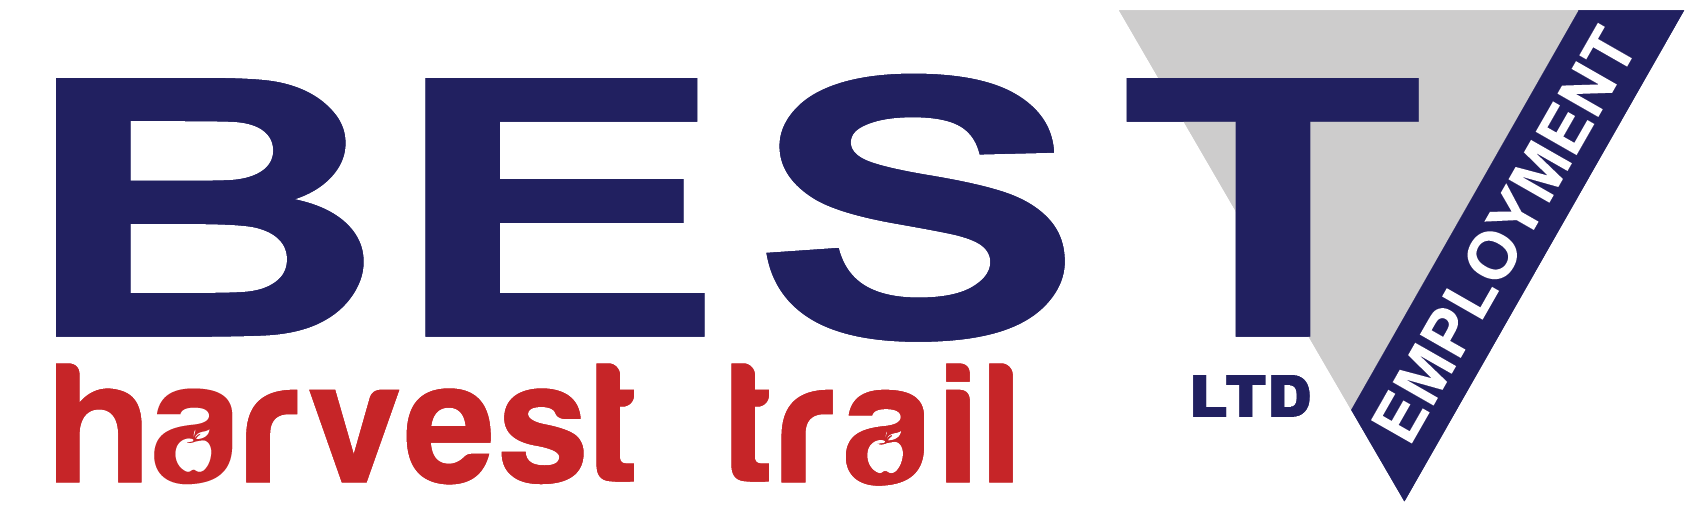 Best Employment Harvest Trail Logo